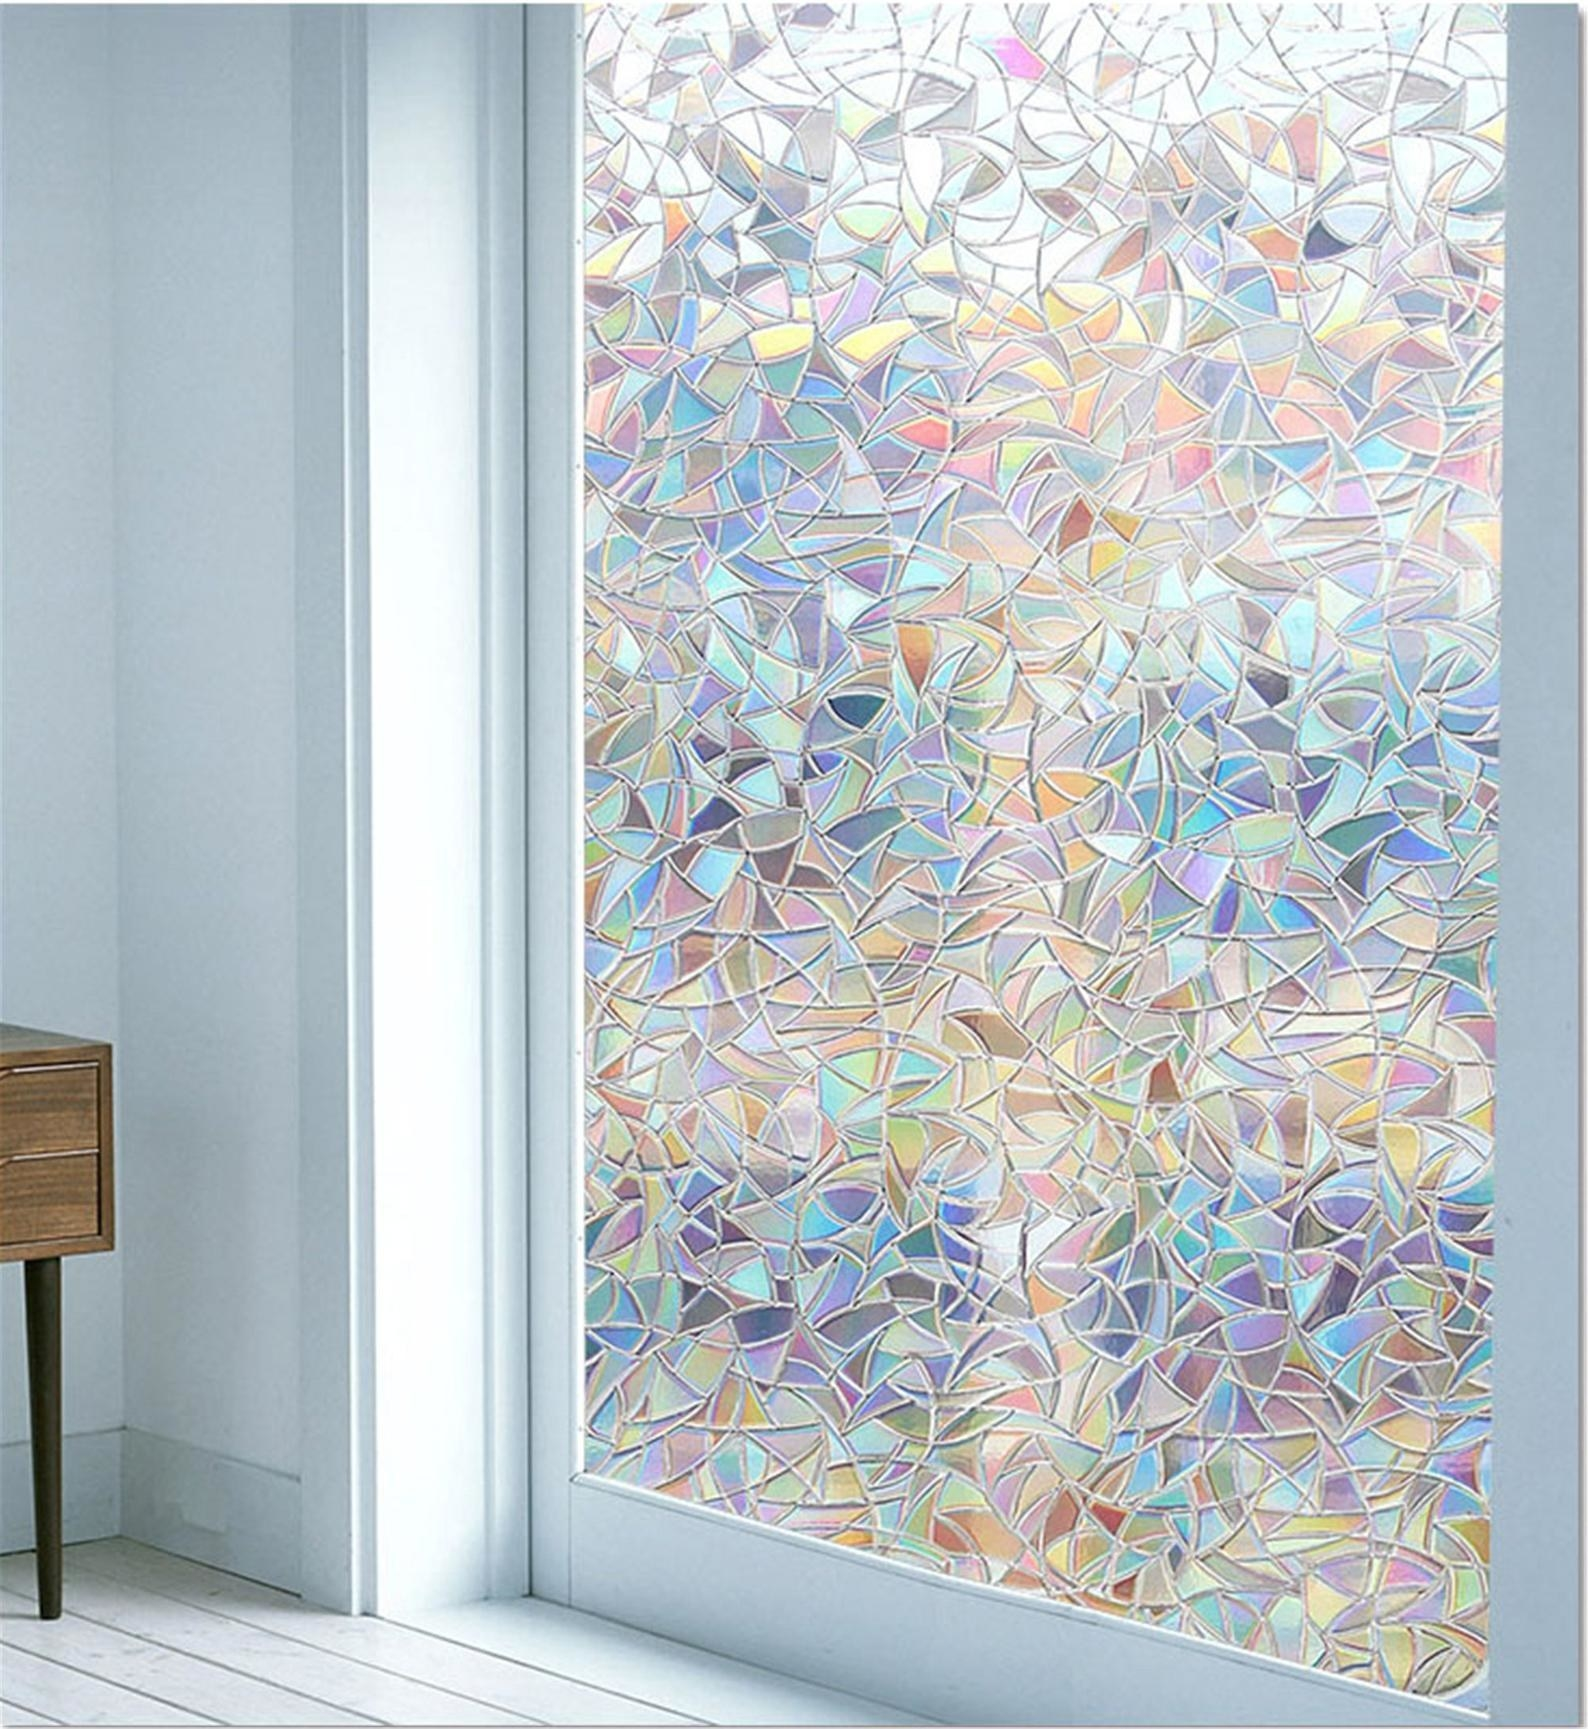 The window film showing an array of colors as light shines through